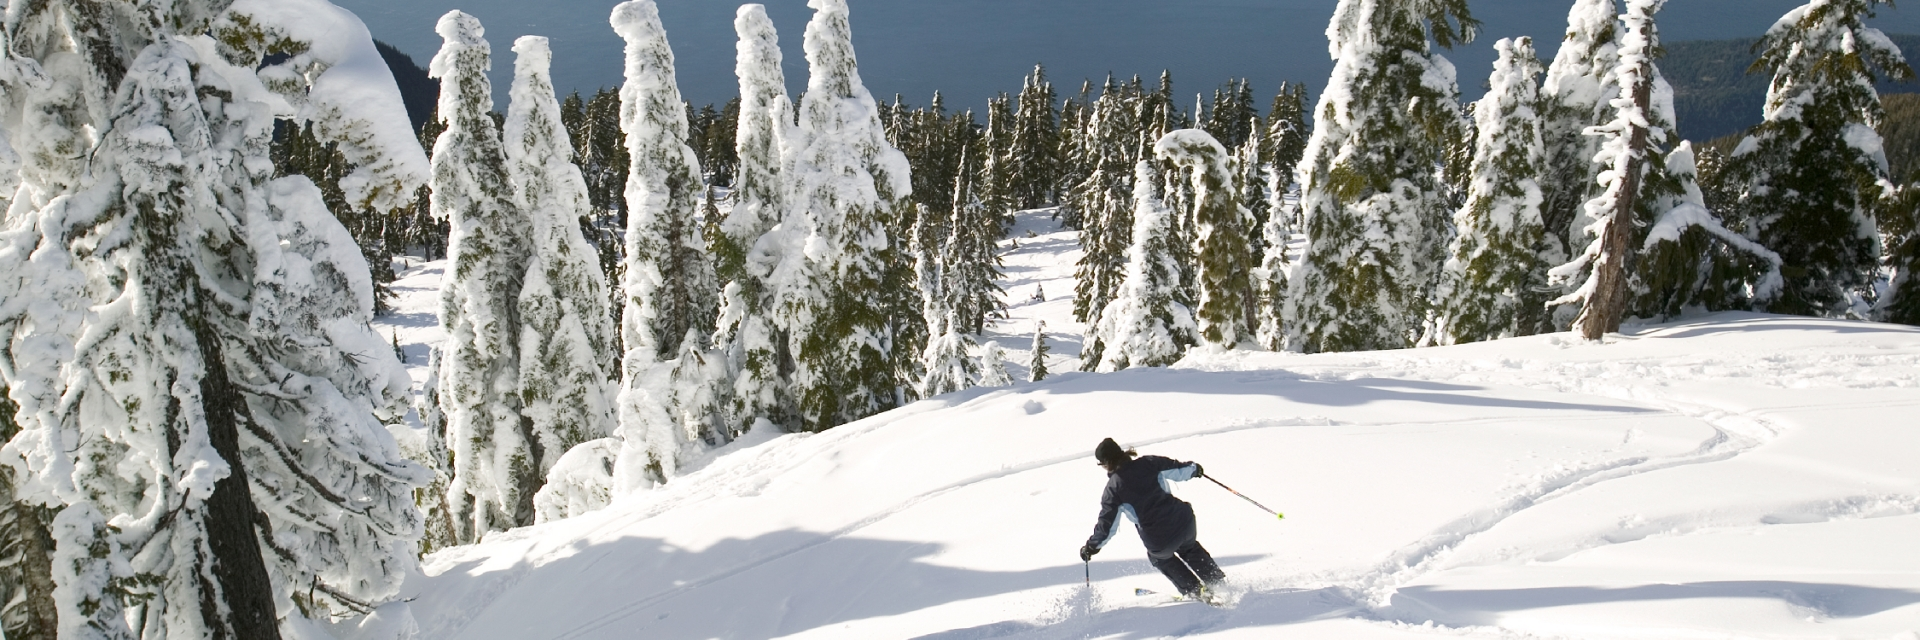 A skier going down a hill on a sunny day.